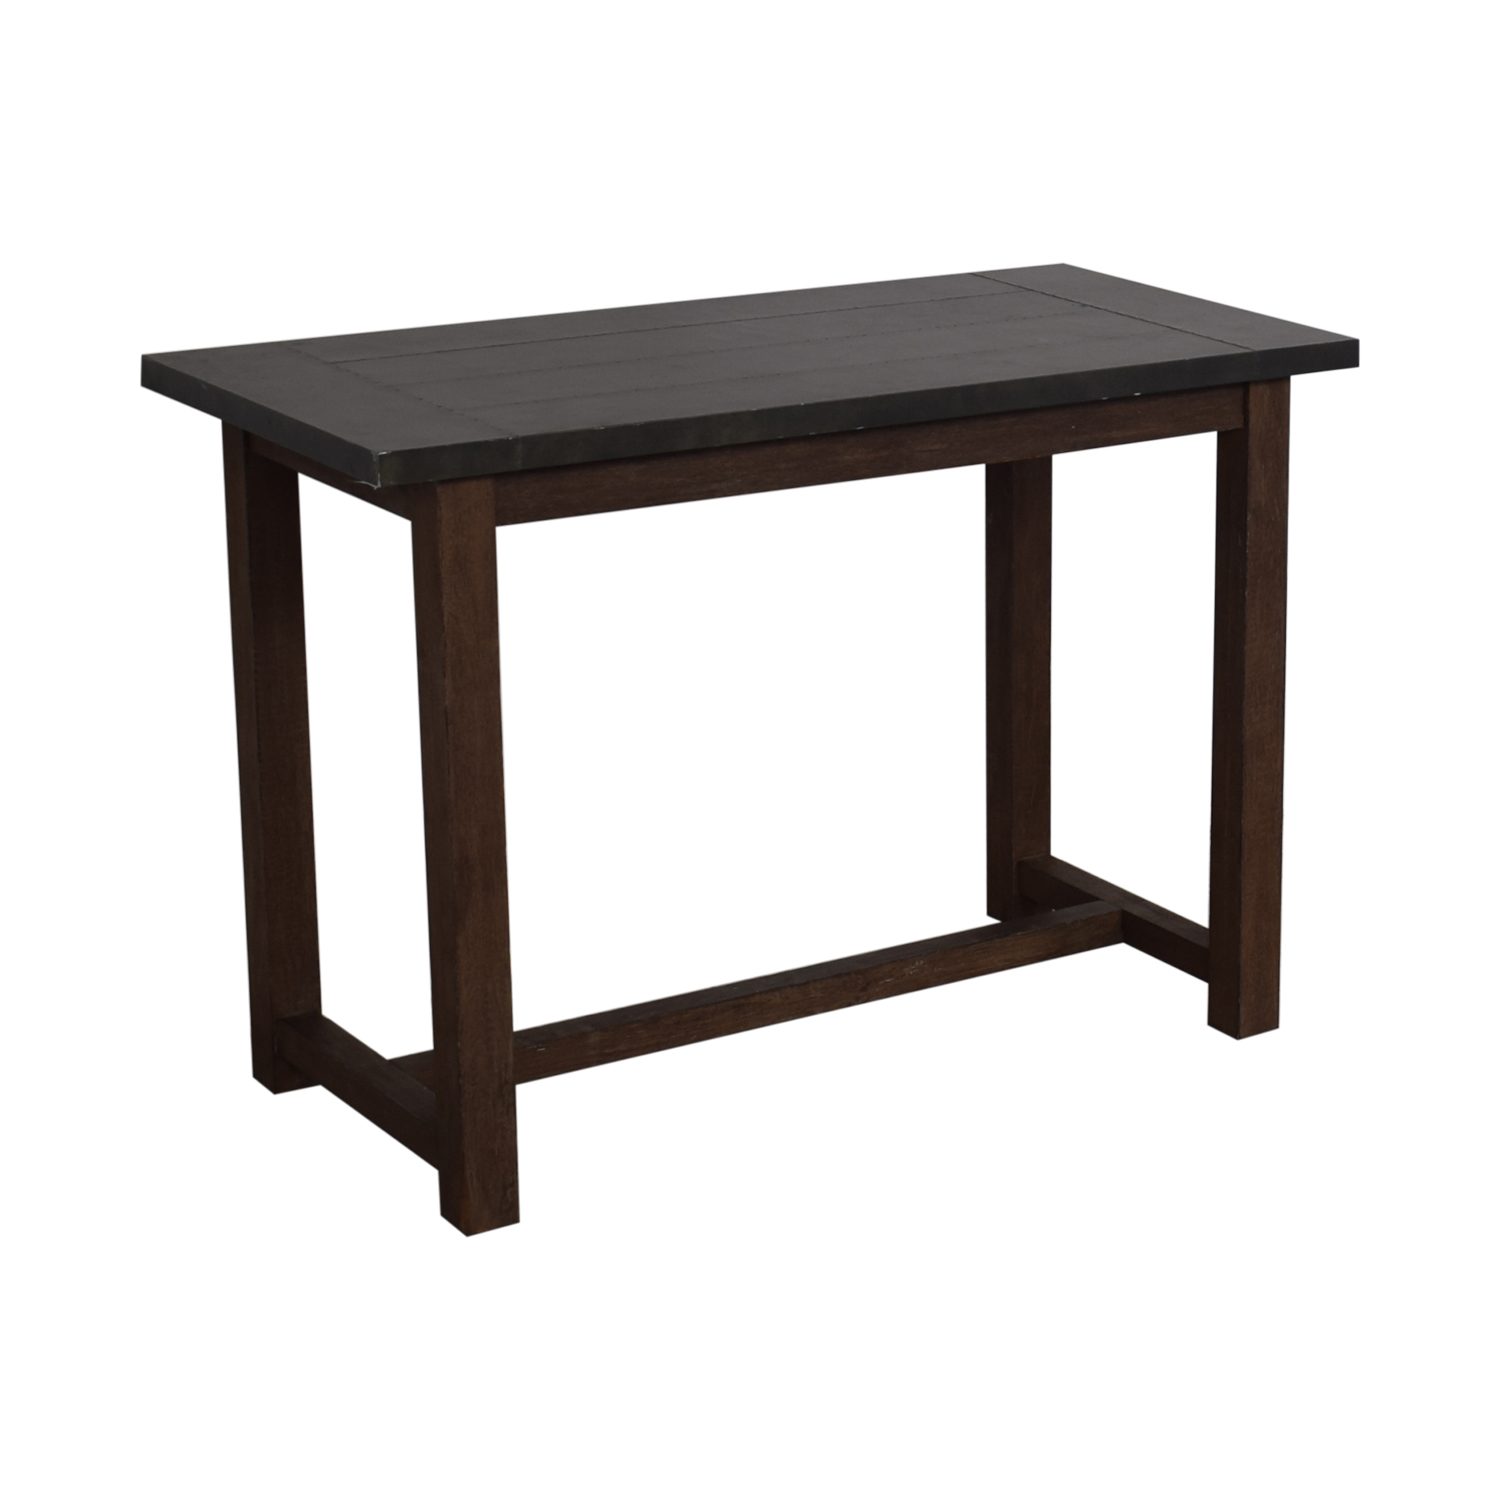 CB2 Crate & Barrel High Counter Table